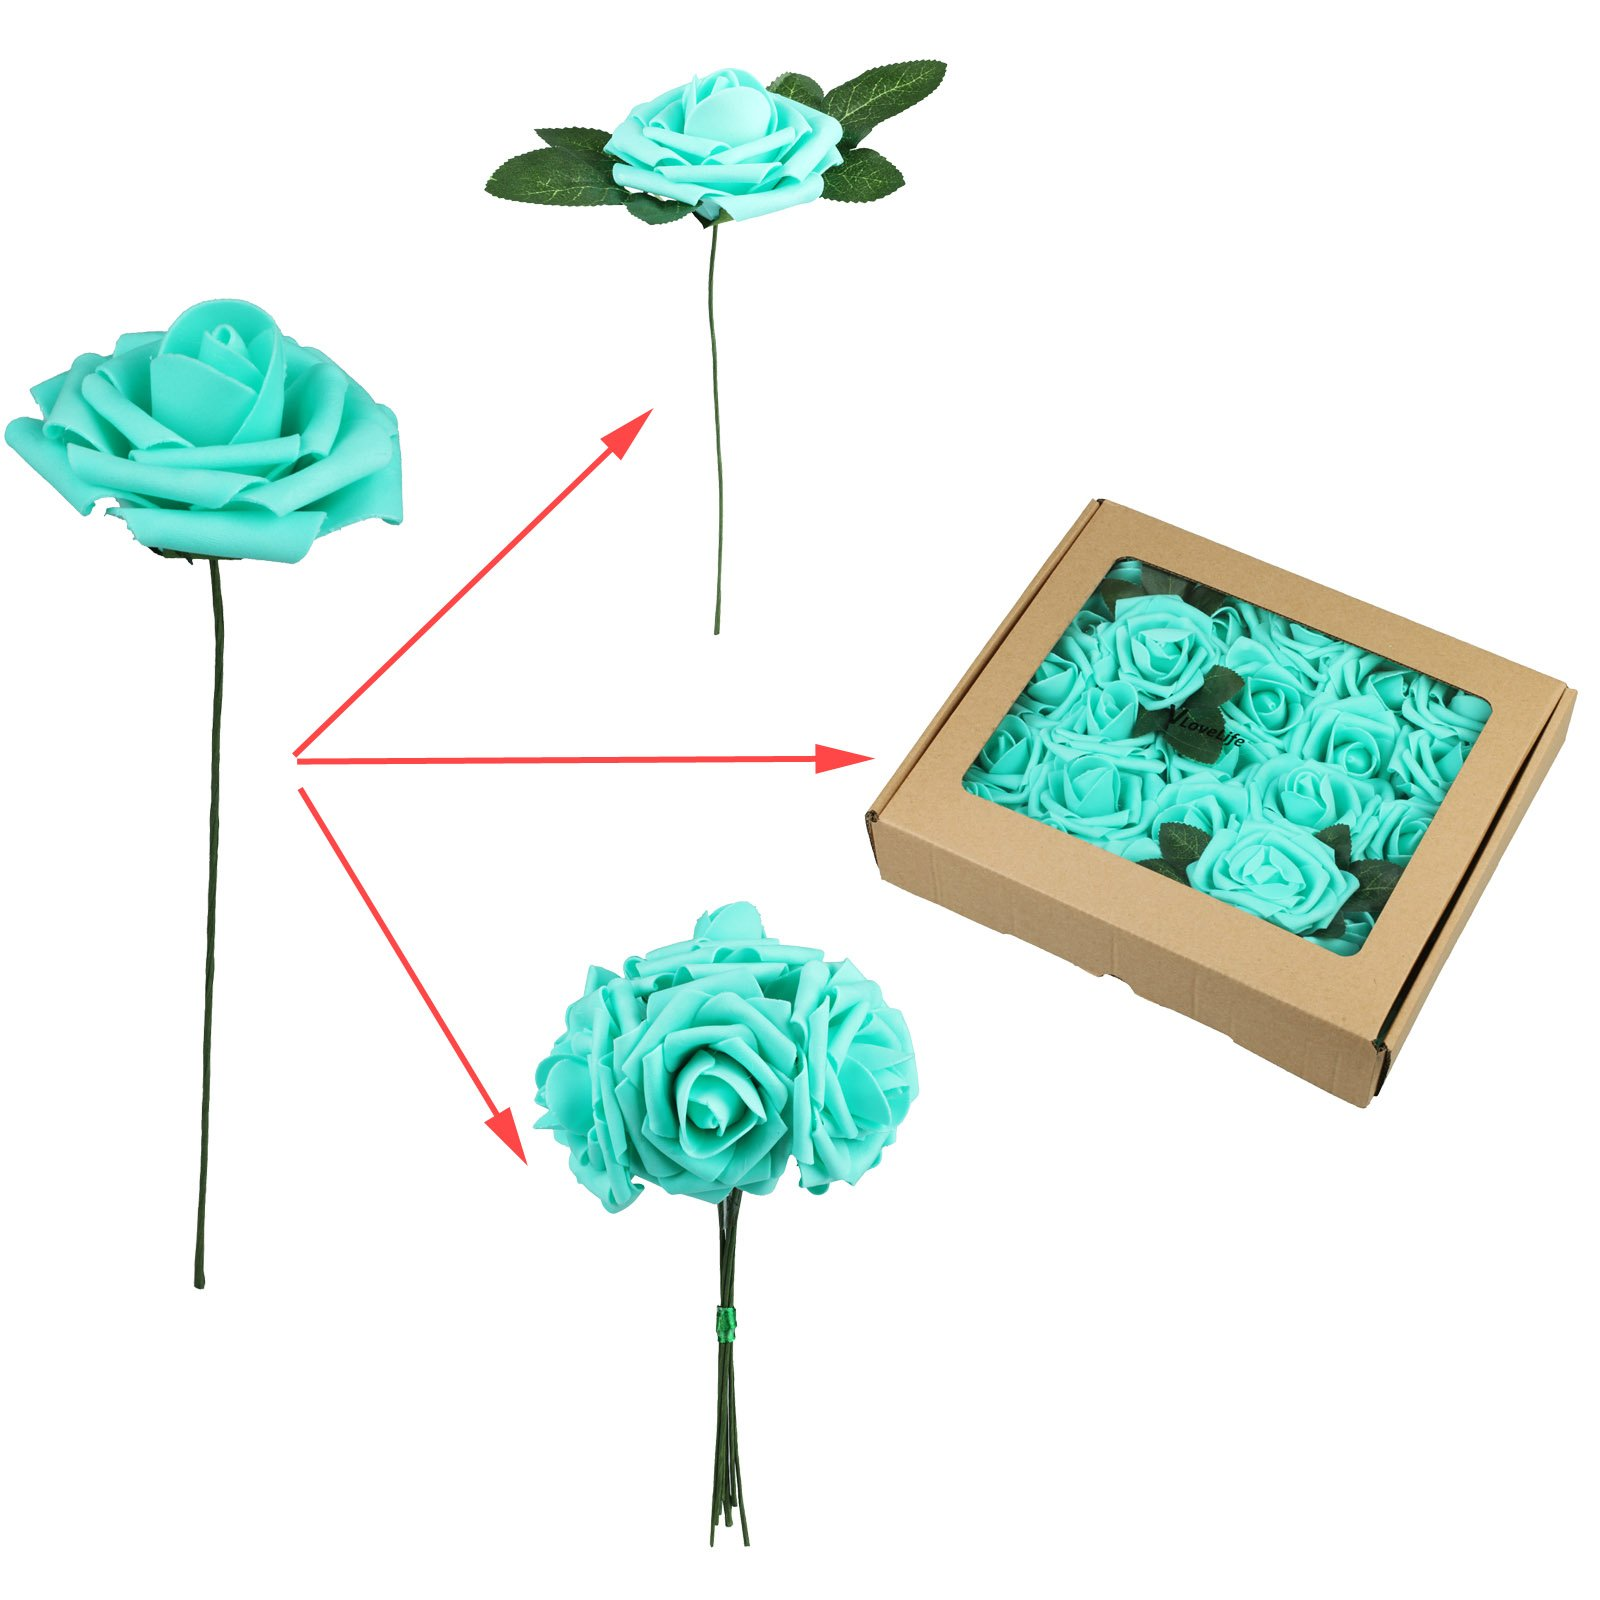 Fivejorya-50pcs-Teal-Blue-Artificial-Roses-Flowers-With-Stems-Real-Looking-Fake-Roses-for-DIY-Wedding-Bouquets-Centerpieces-Arrangements-Birthday-Home-Party-Decor-Favor